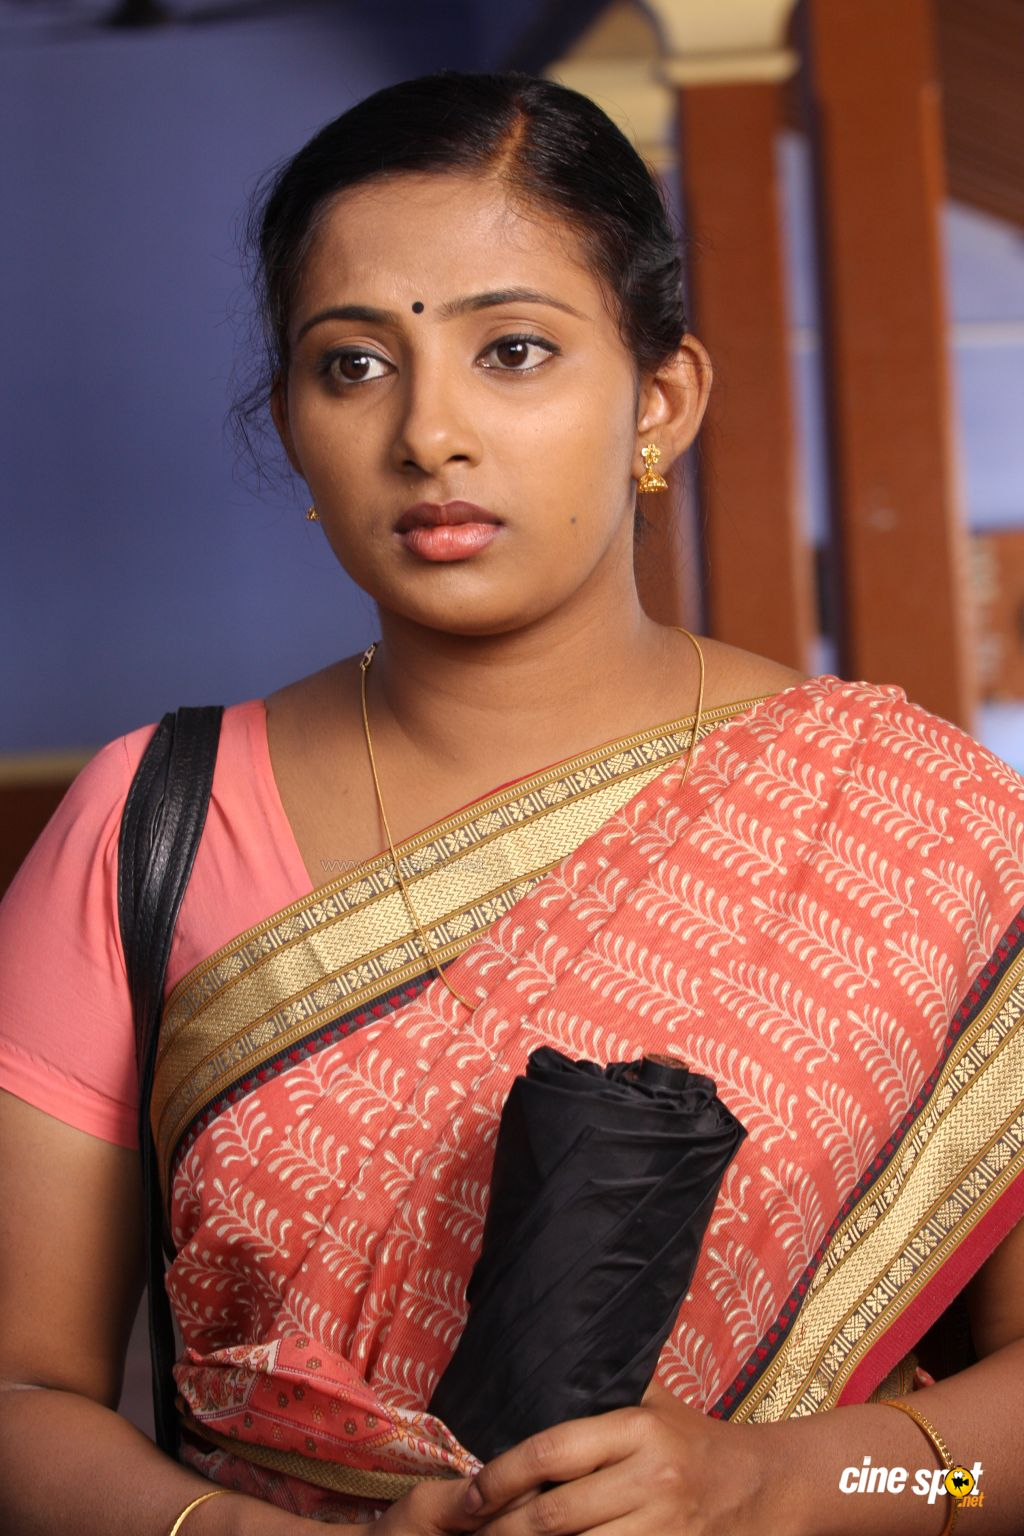 [Image: Niya+Malayalam+Movie_+Serial+Actress+Photos+_1_.JPG]